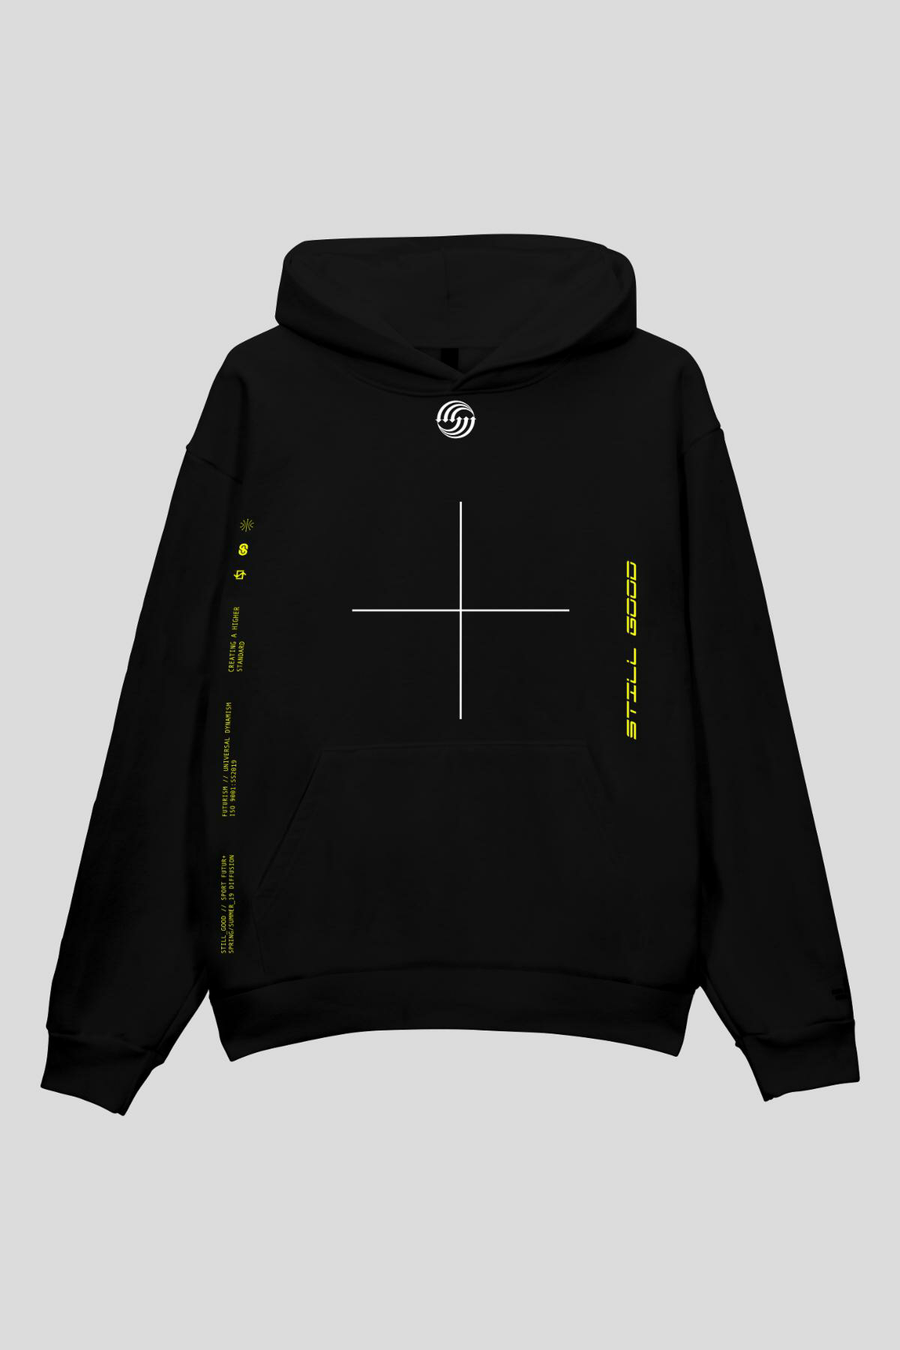 Universal Hoodie Black / XS | Still Good